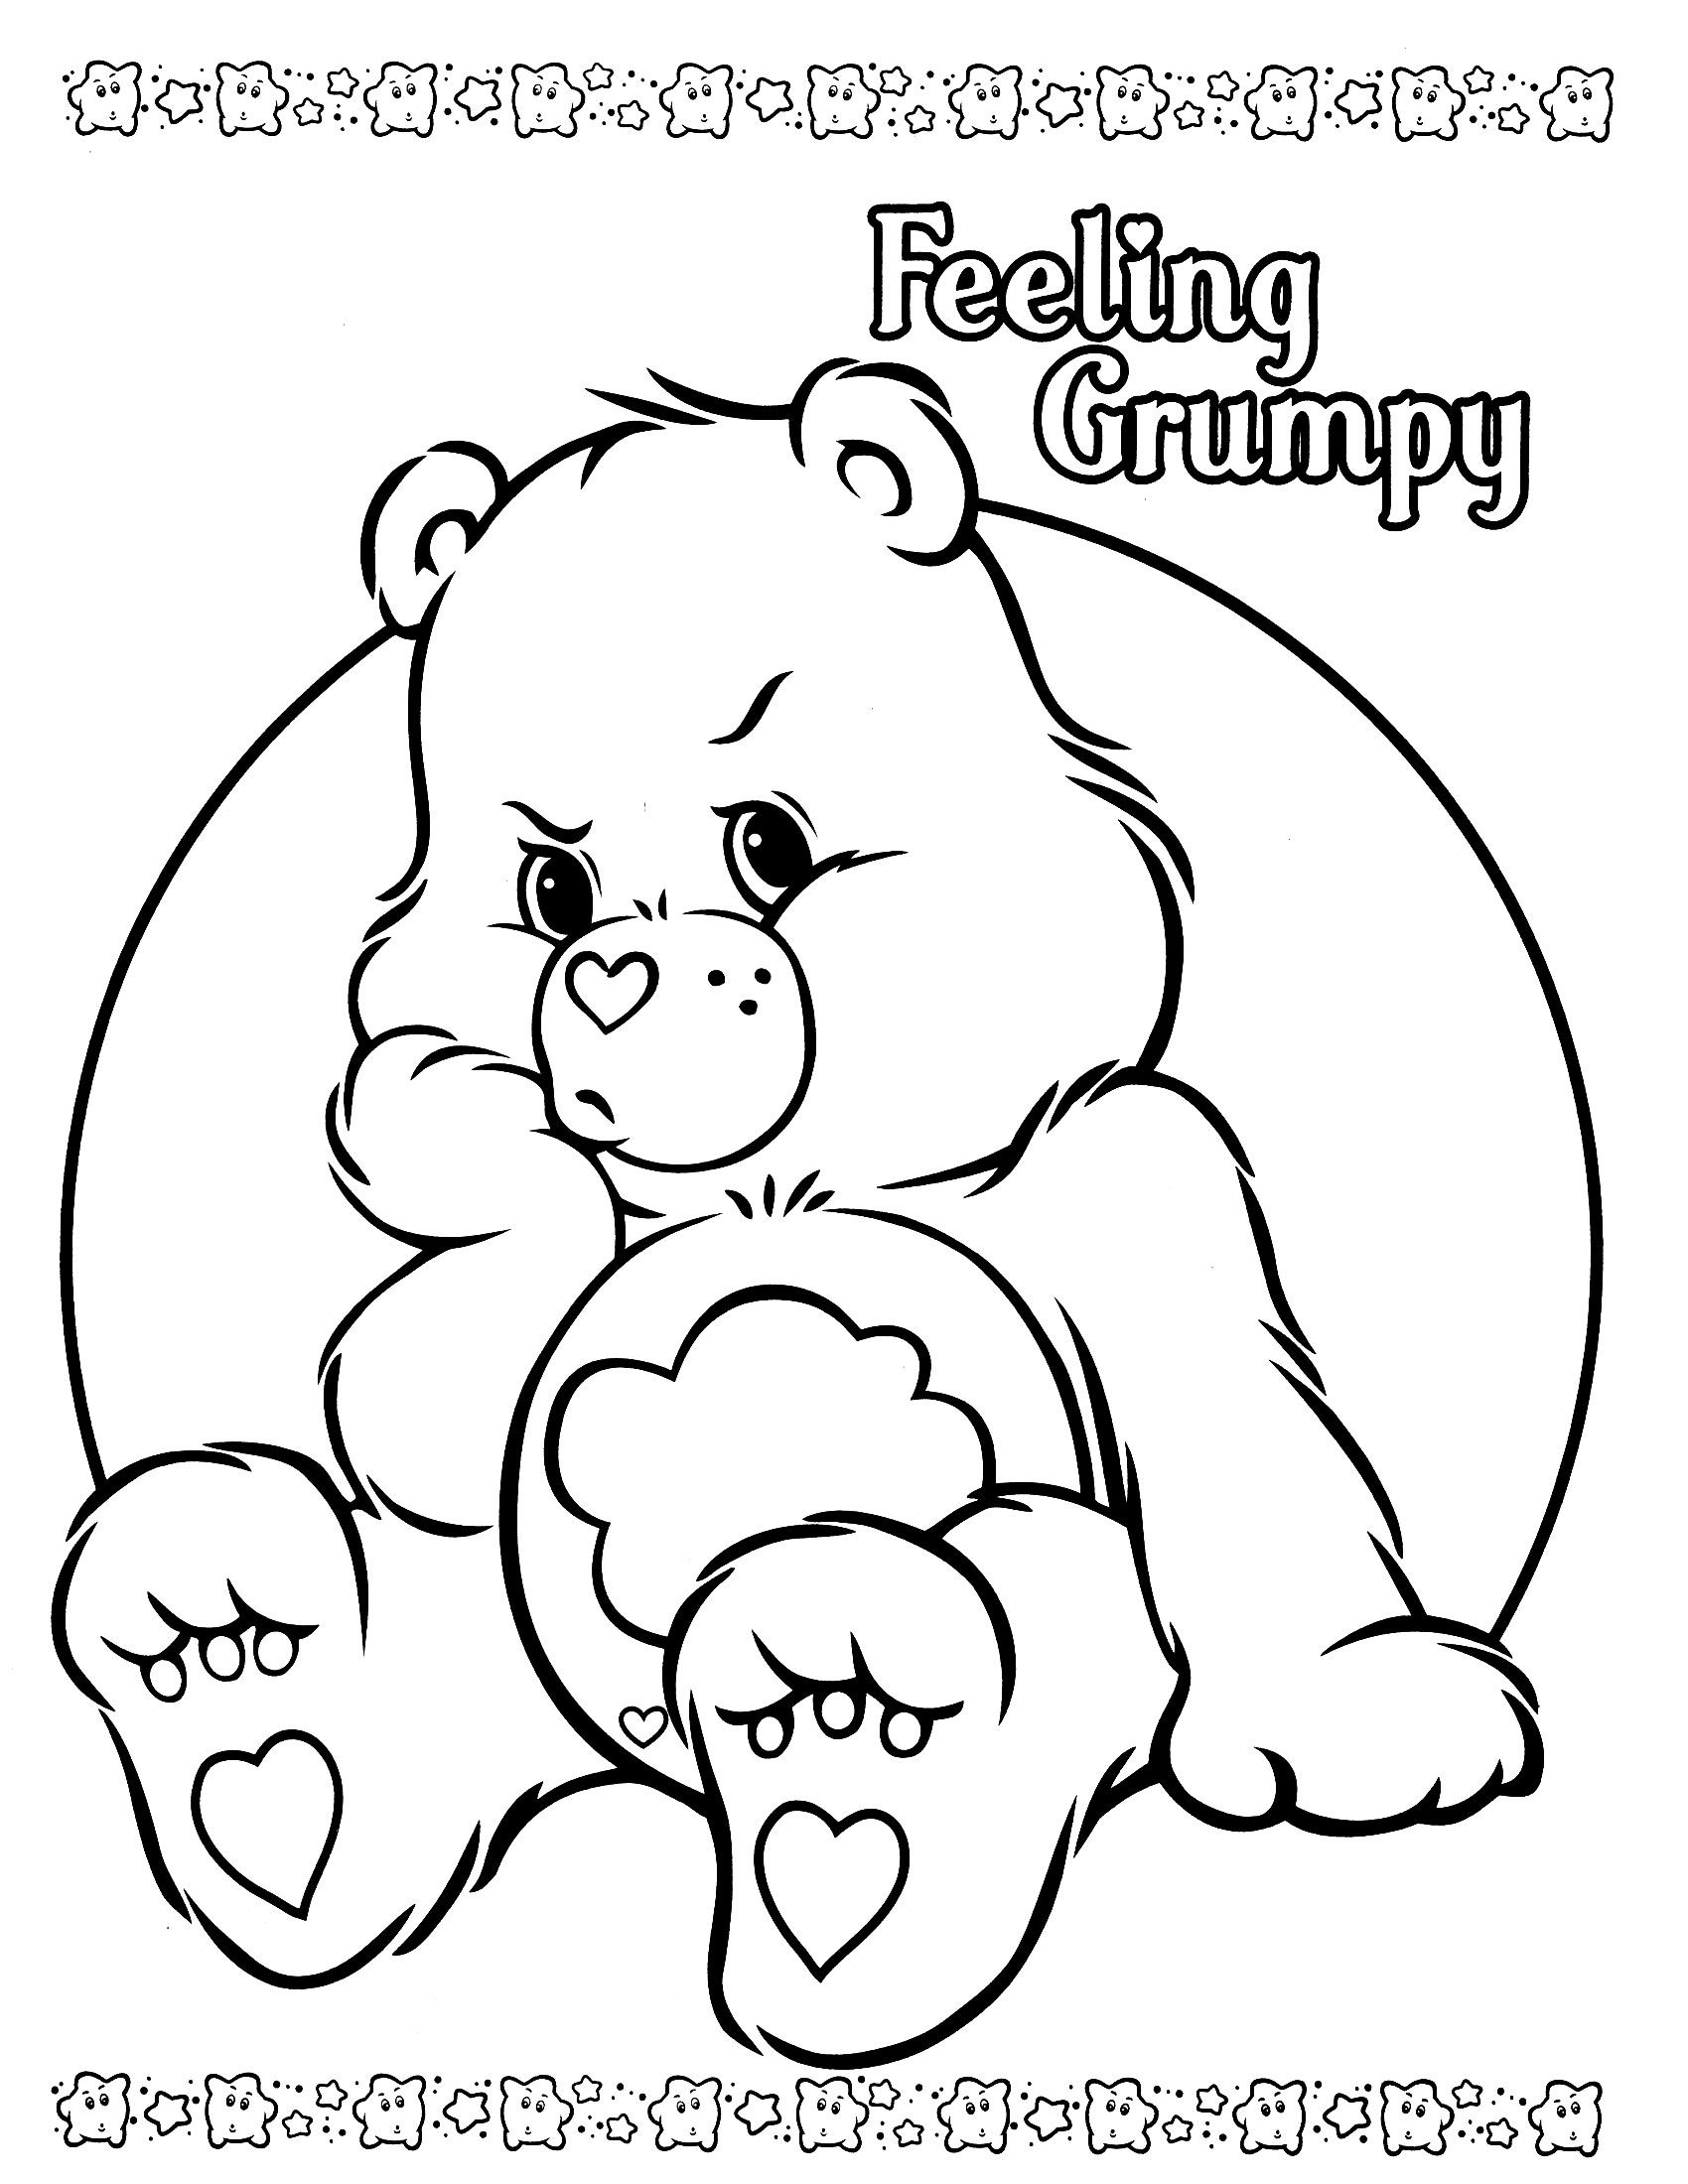 grumpy care bears coloring pages - photo#11